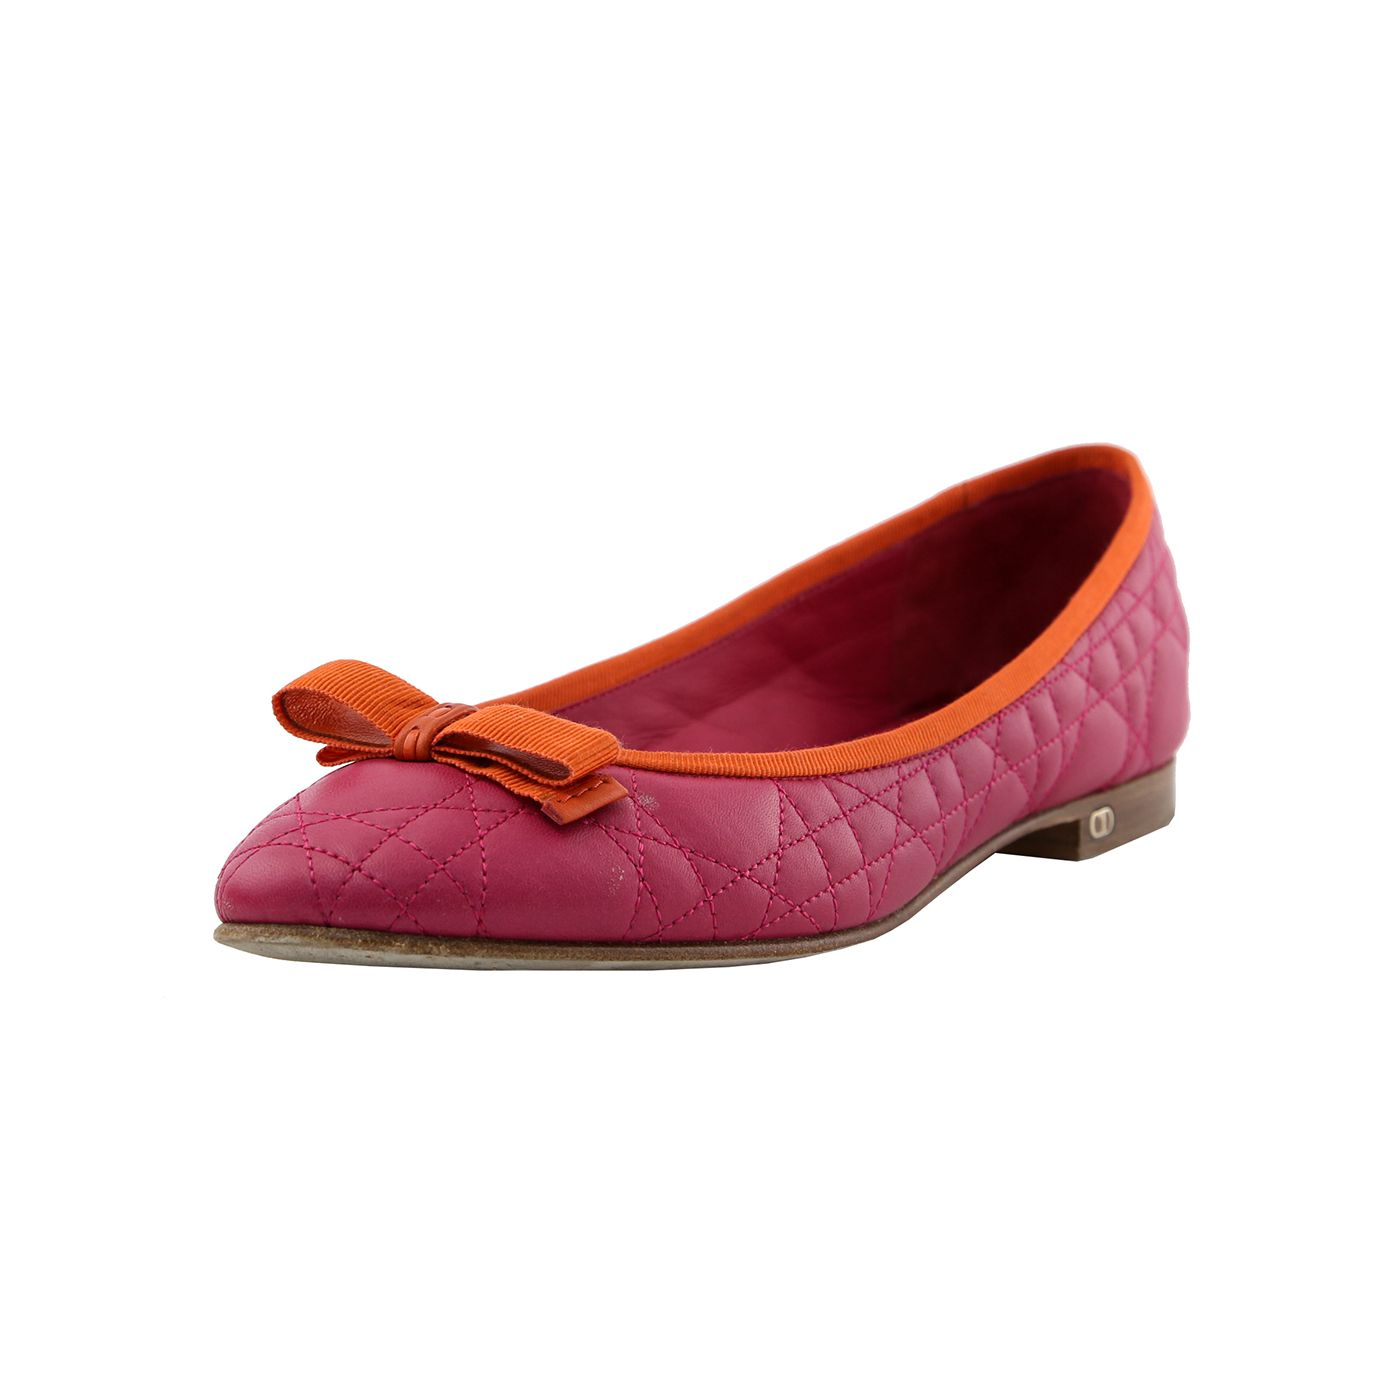 Christian Dior Bicolor Ow Flats 41